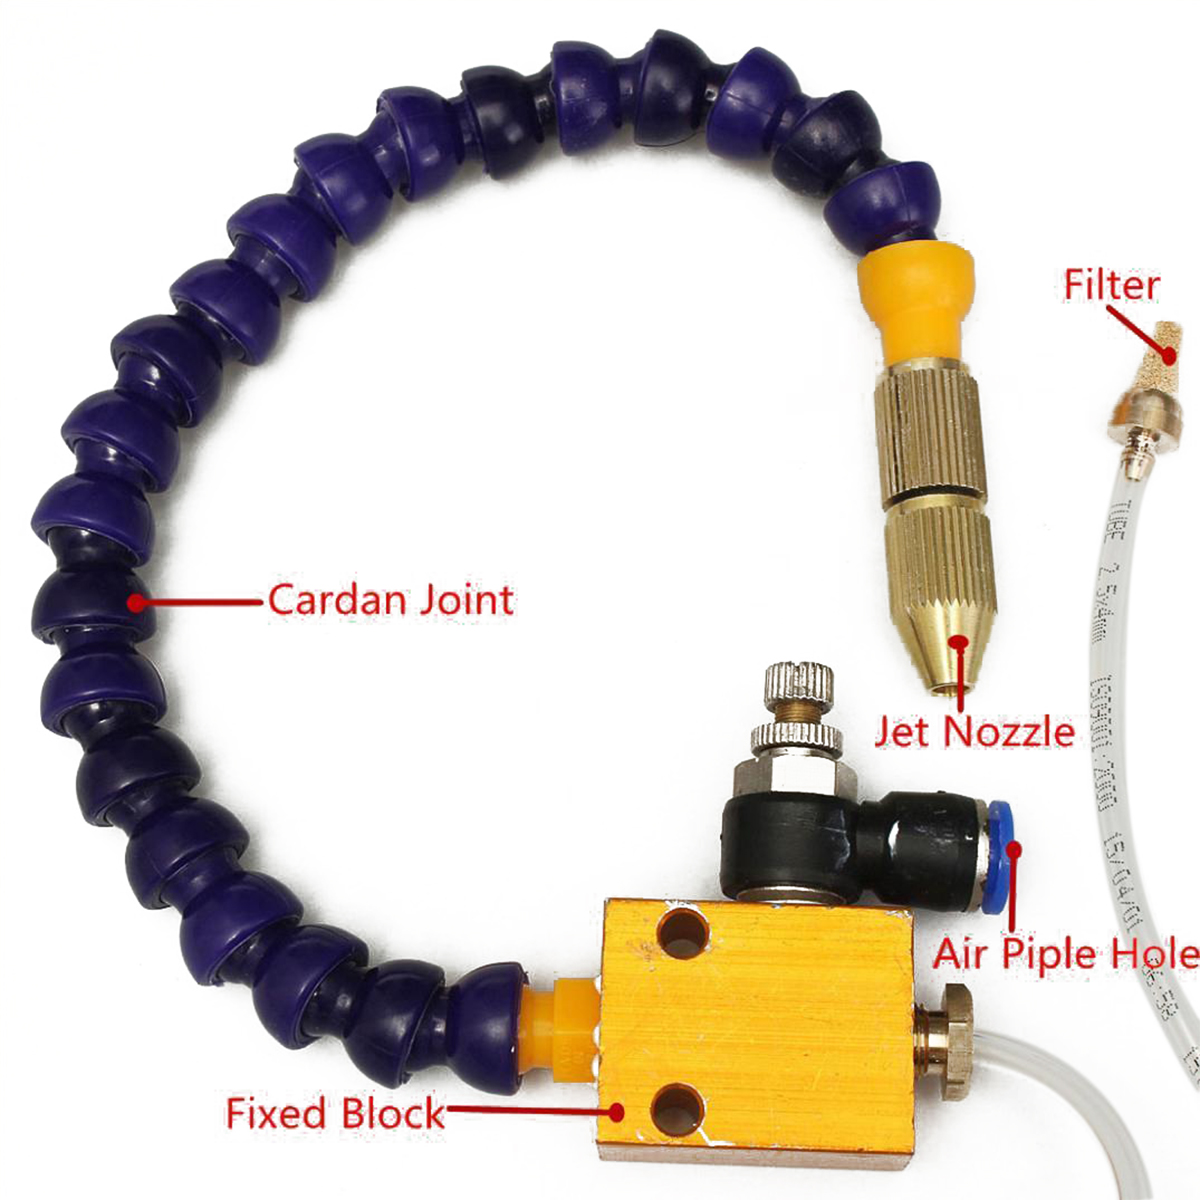 Multi-function Mist Coolant Lubrication Spray System Unit Air Hose Pipe for CNC Lathe Milling Machine Mayitr Coolant Misting new mist coolant lubrication spray system for 8mm air pipe cnc lathe milling drill